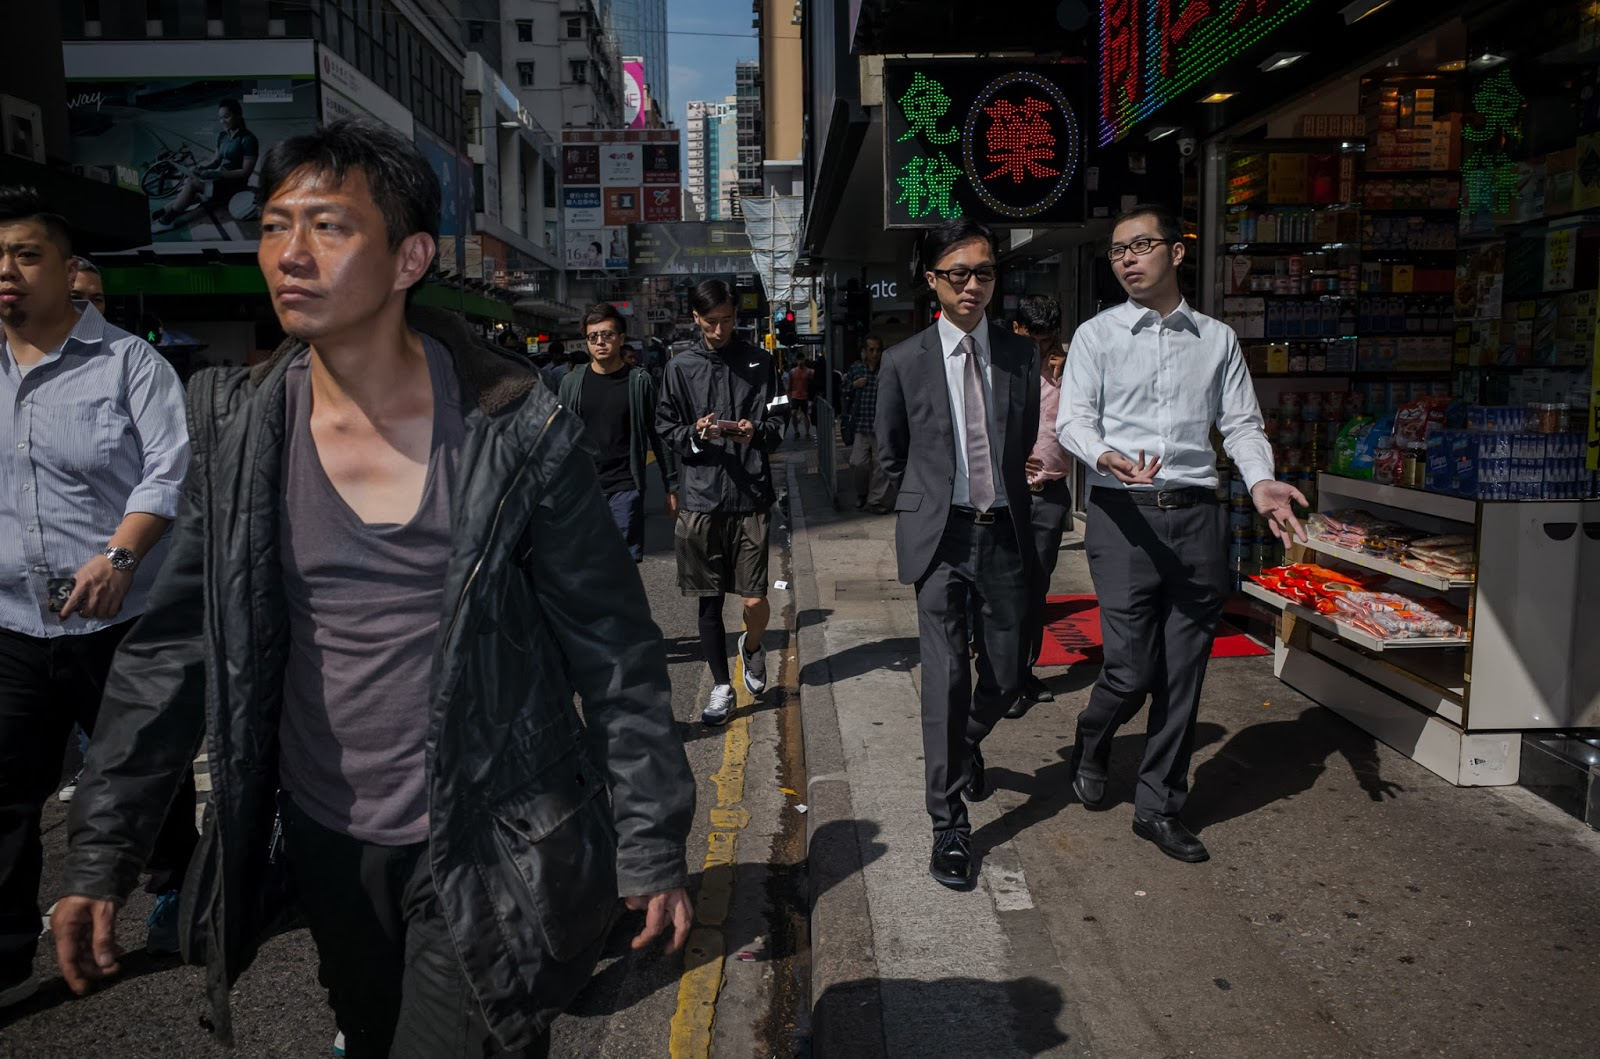 bigheadtaco com: Non-Review: The Ricoh GR II in Hong Kong